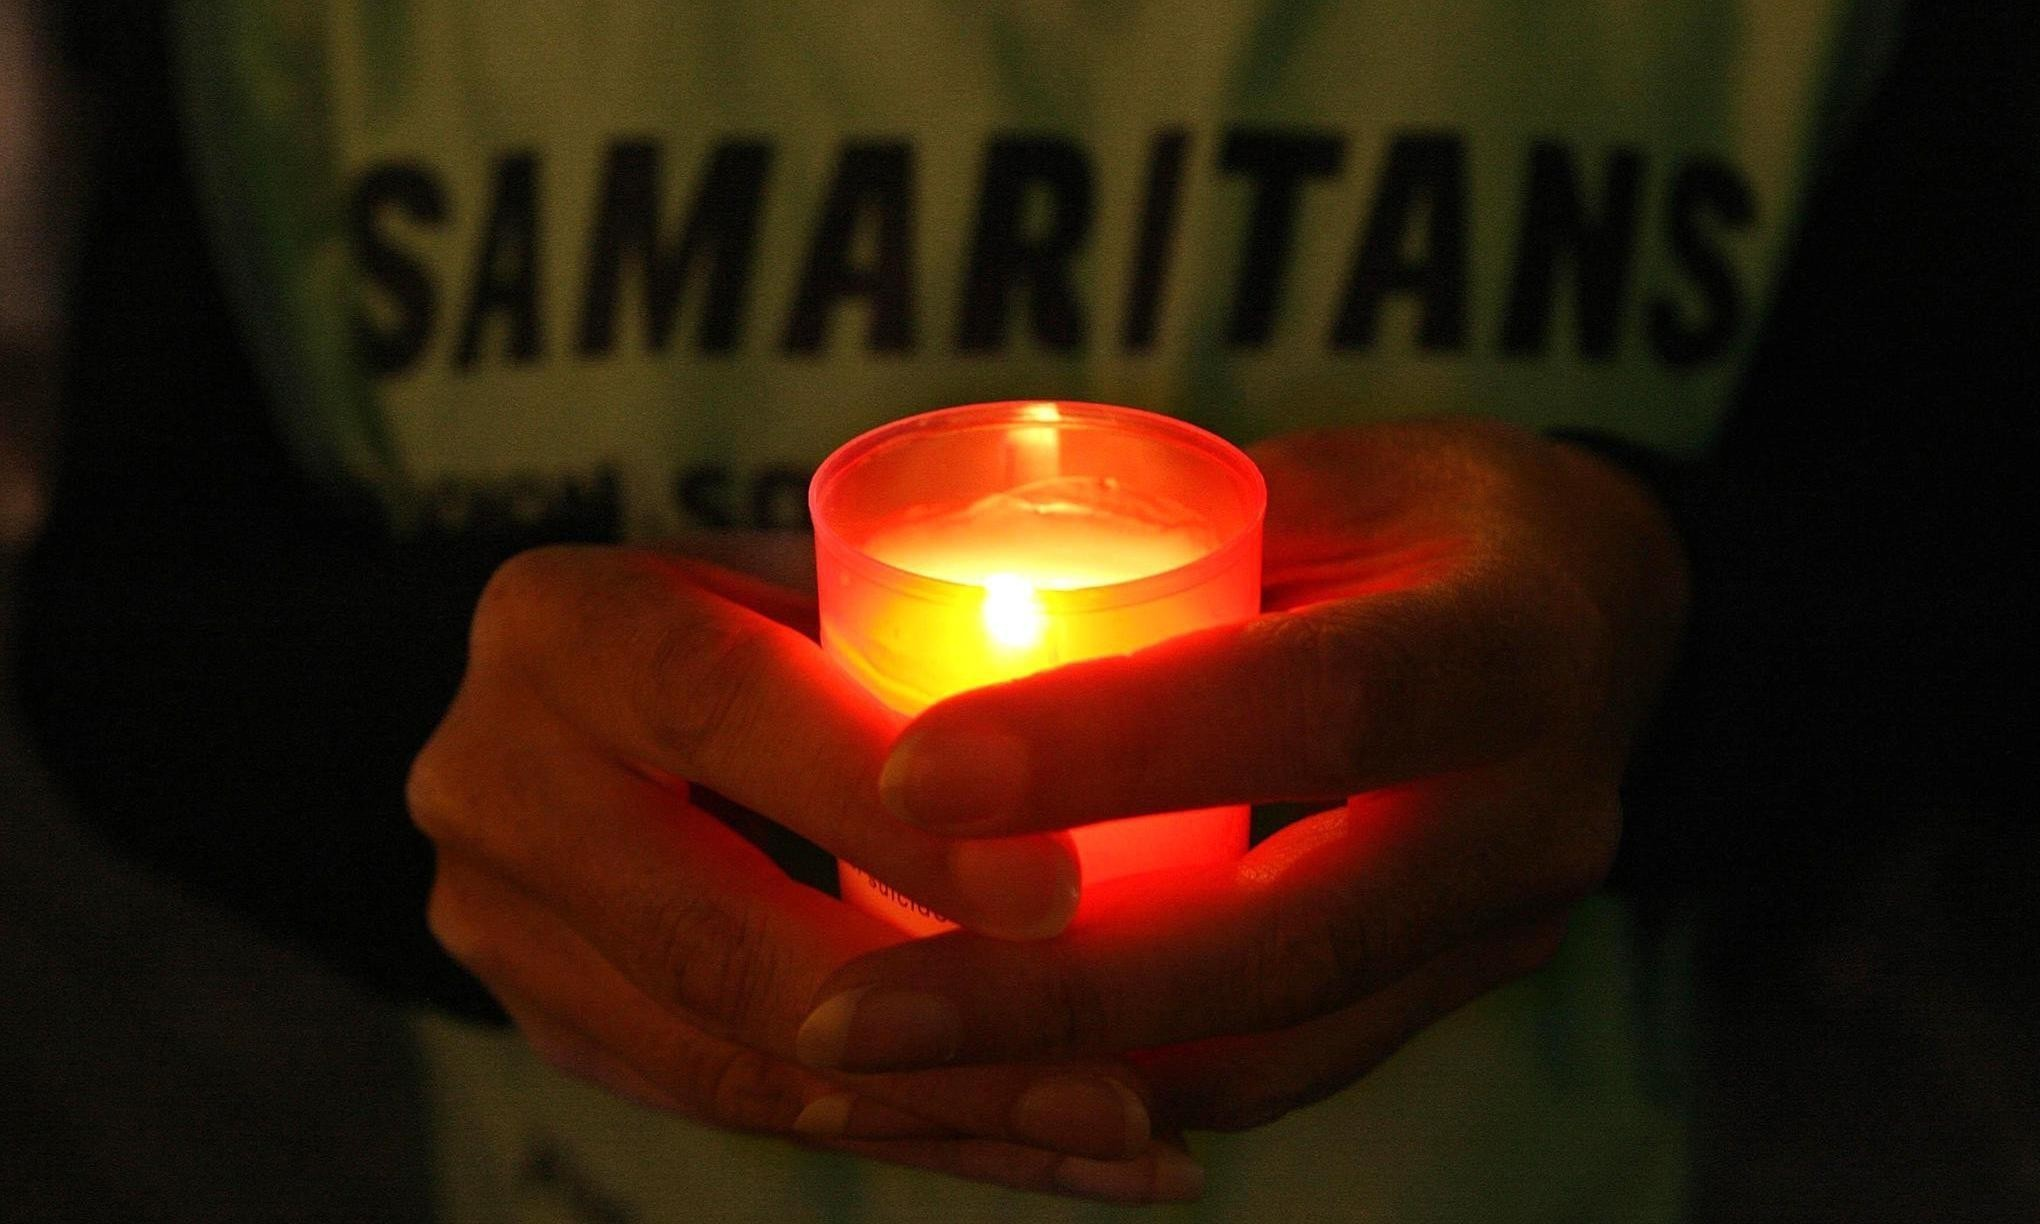 Strong link between disadvantage and suicide, says Samaritans